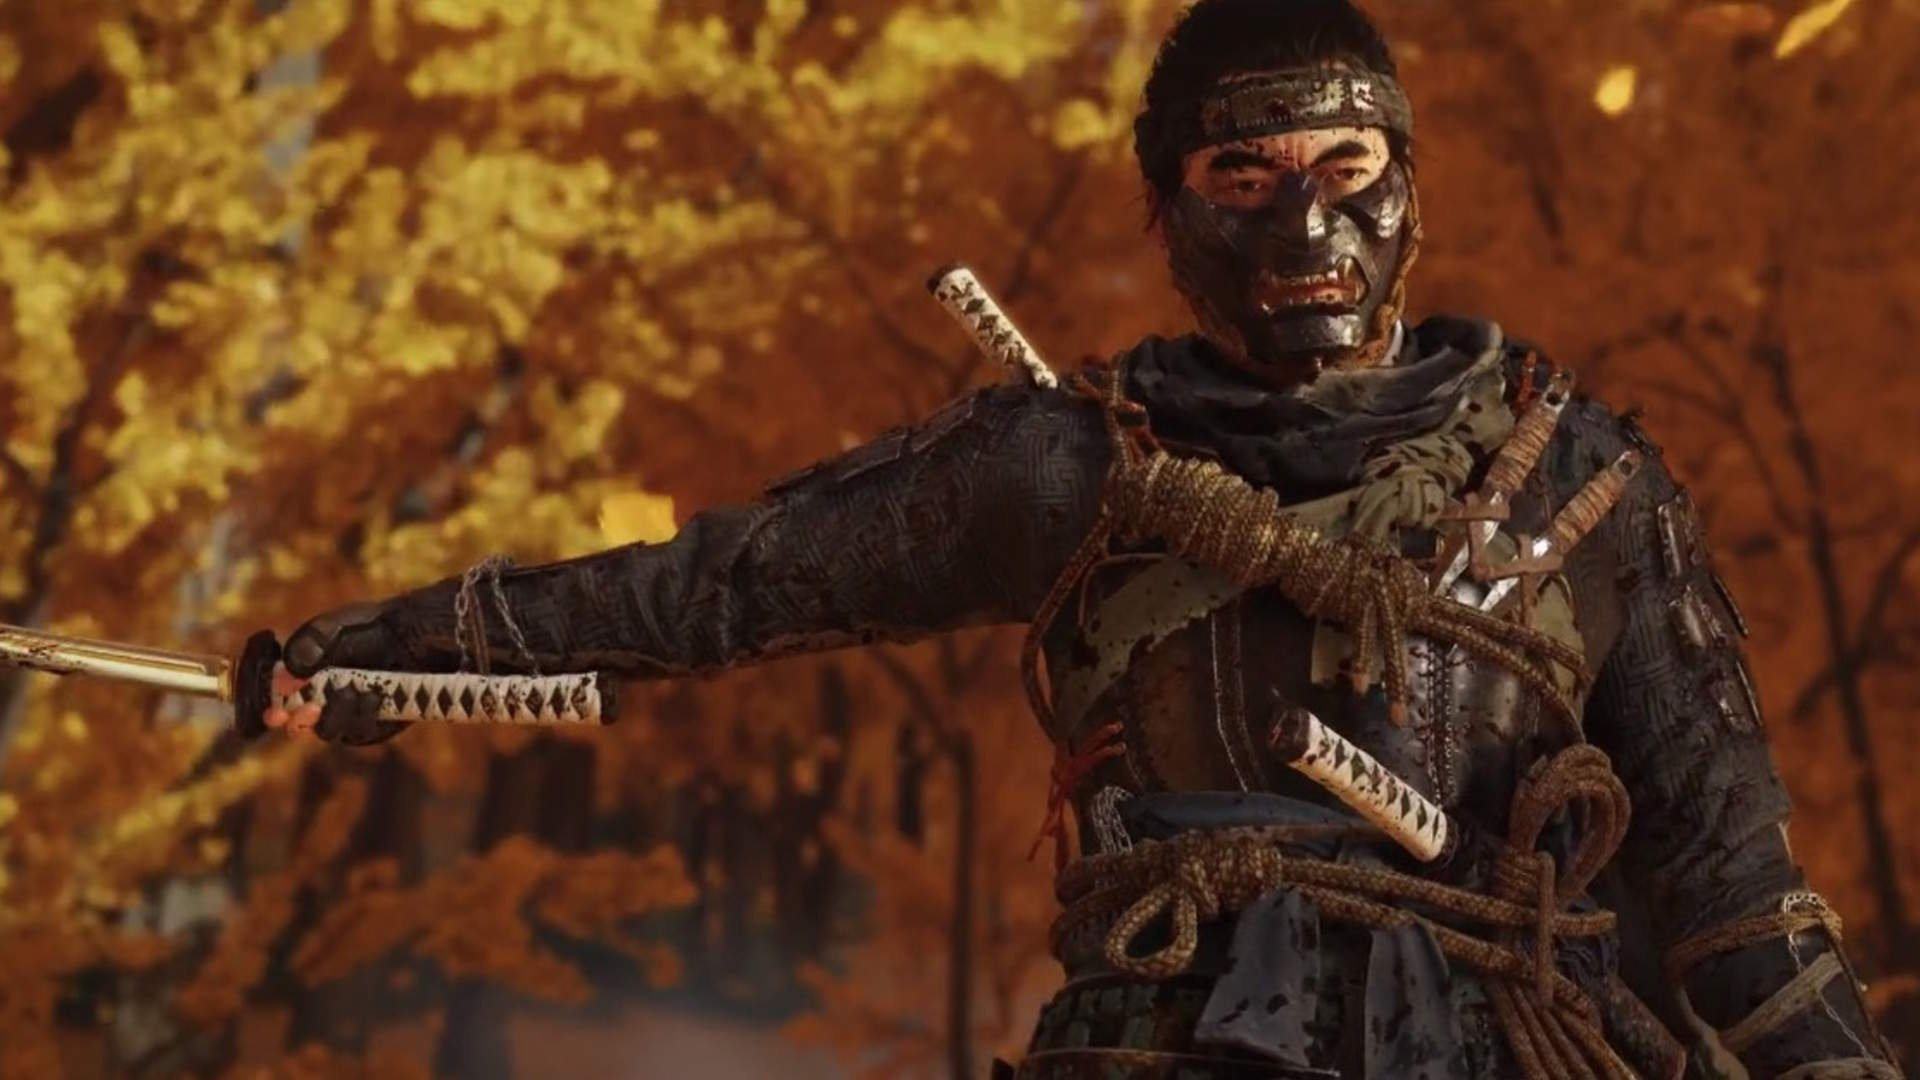 will Ghost of Tsushima come to PC and Xbox One?